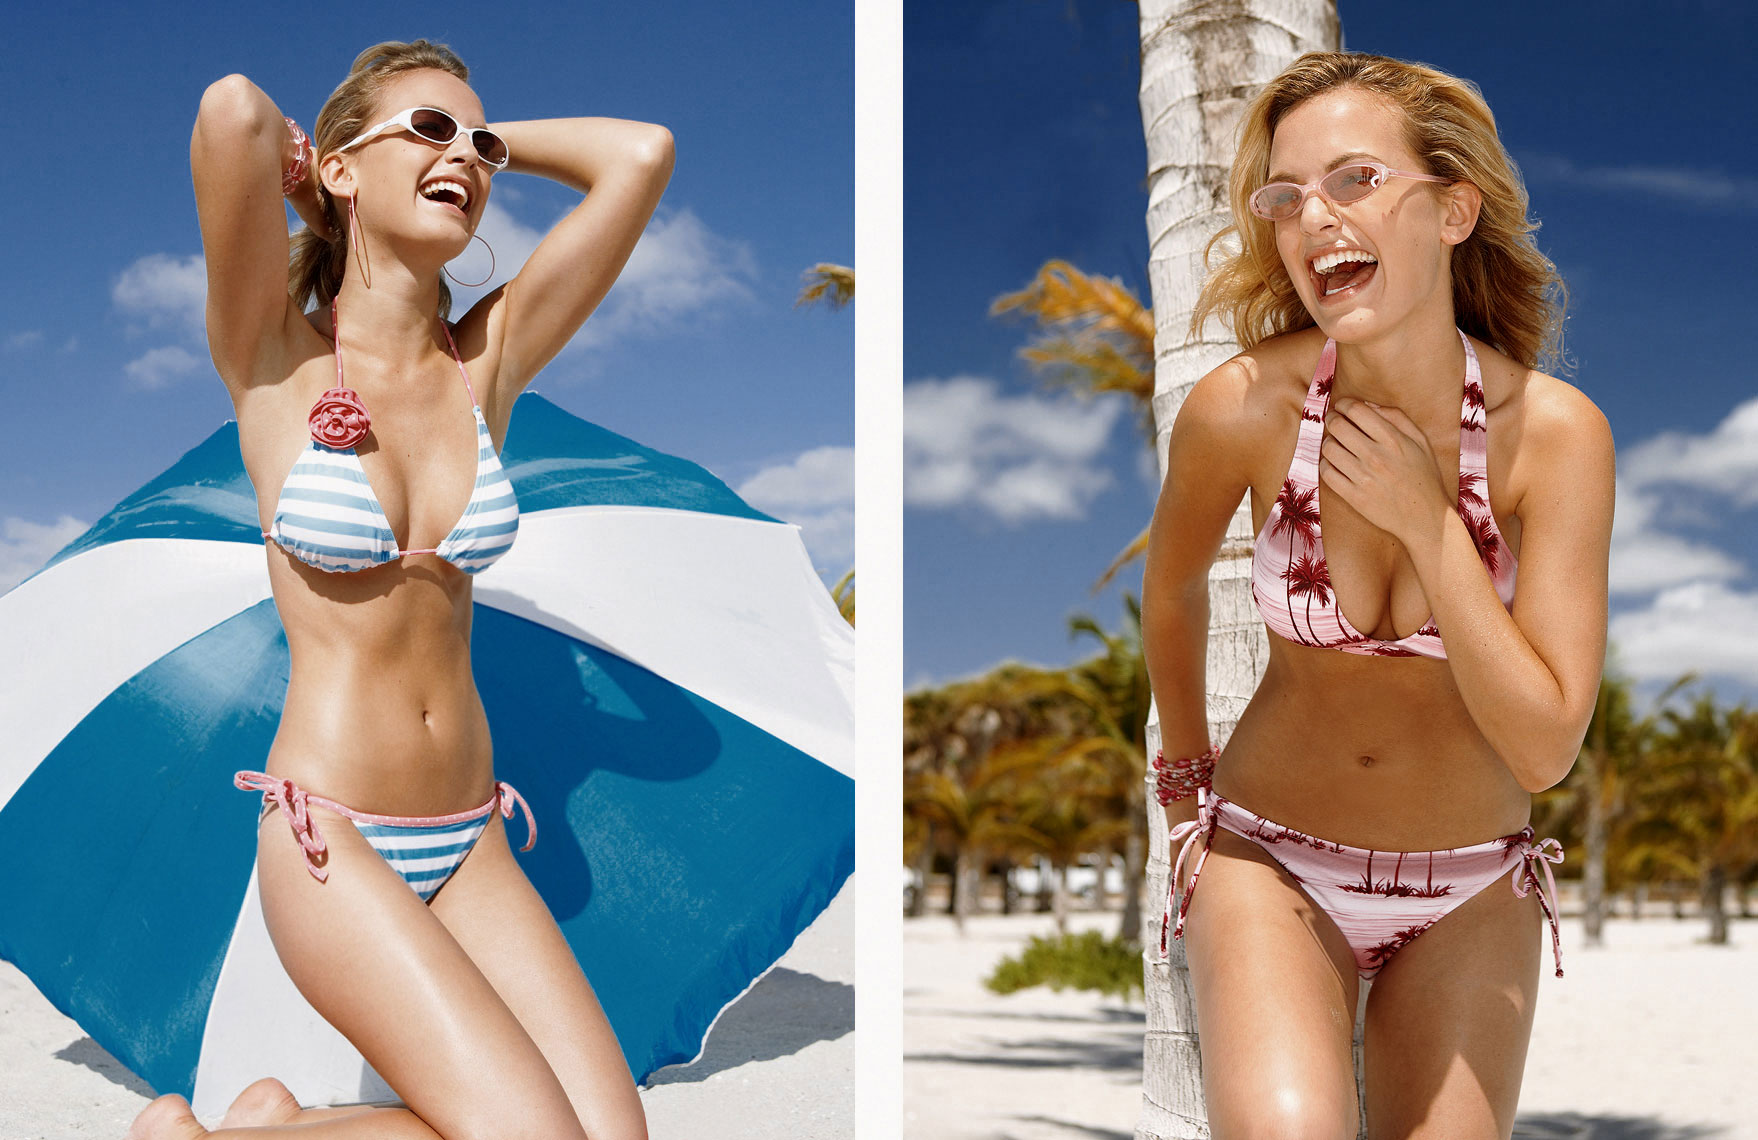 12-Kohls-Swim-2n2-_new